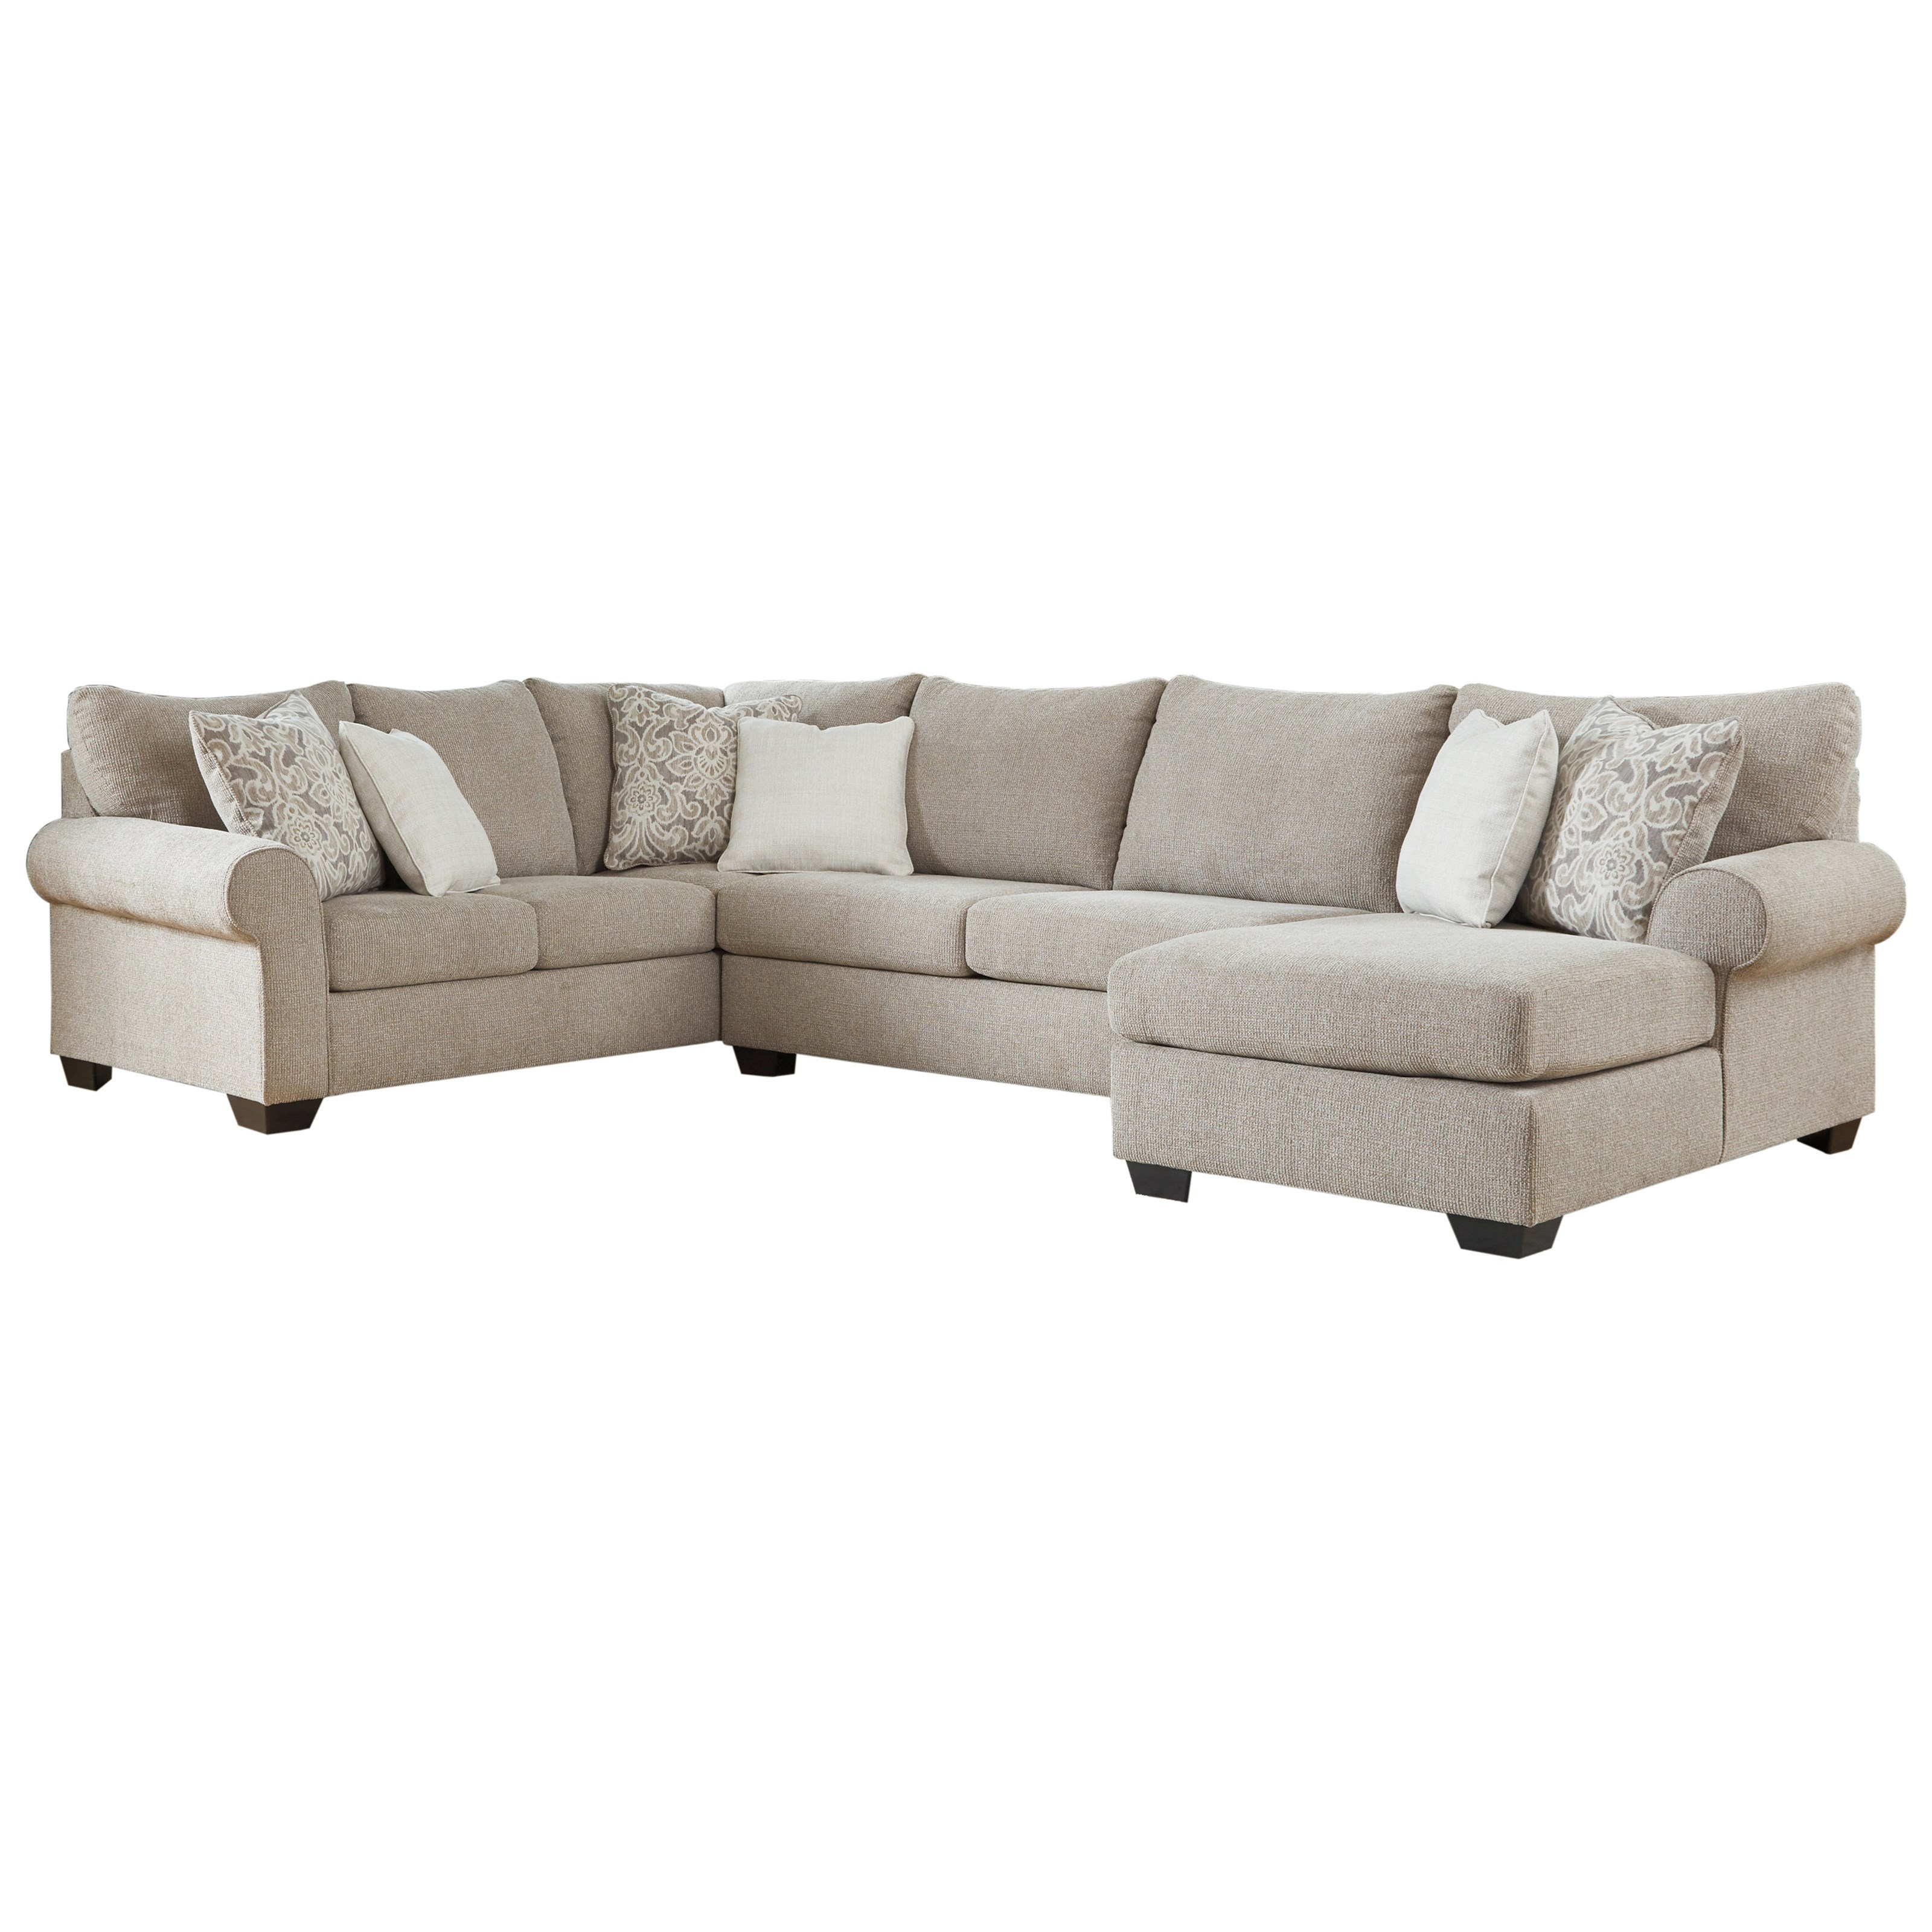 Transitional 3-Piece Sectional with Right Chaise